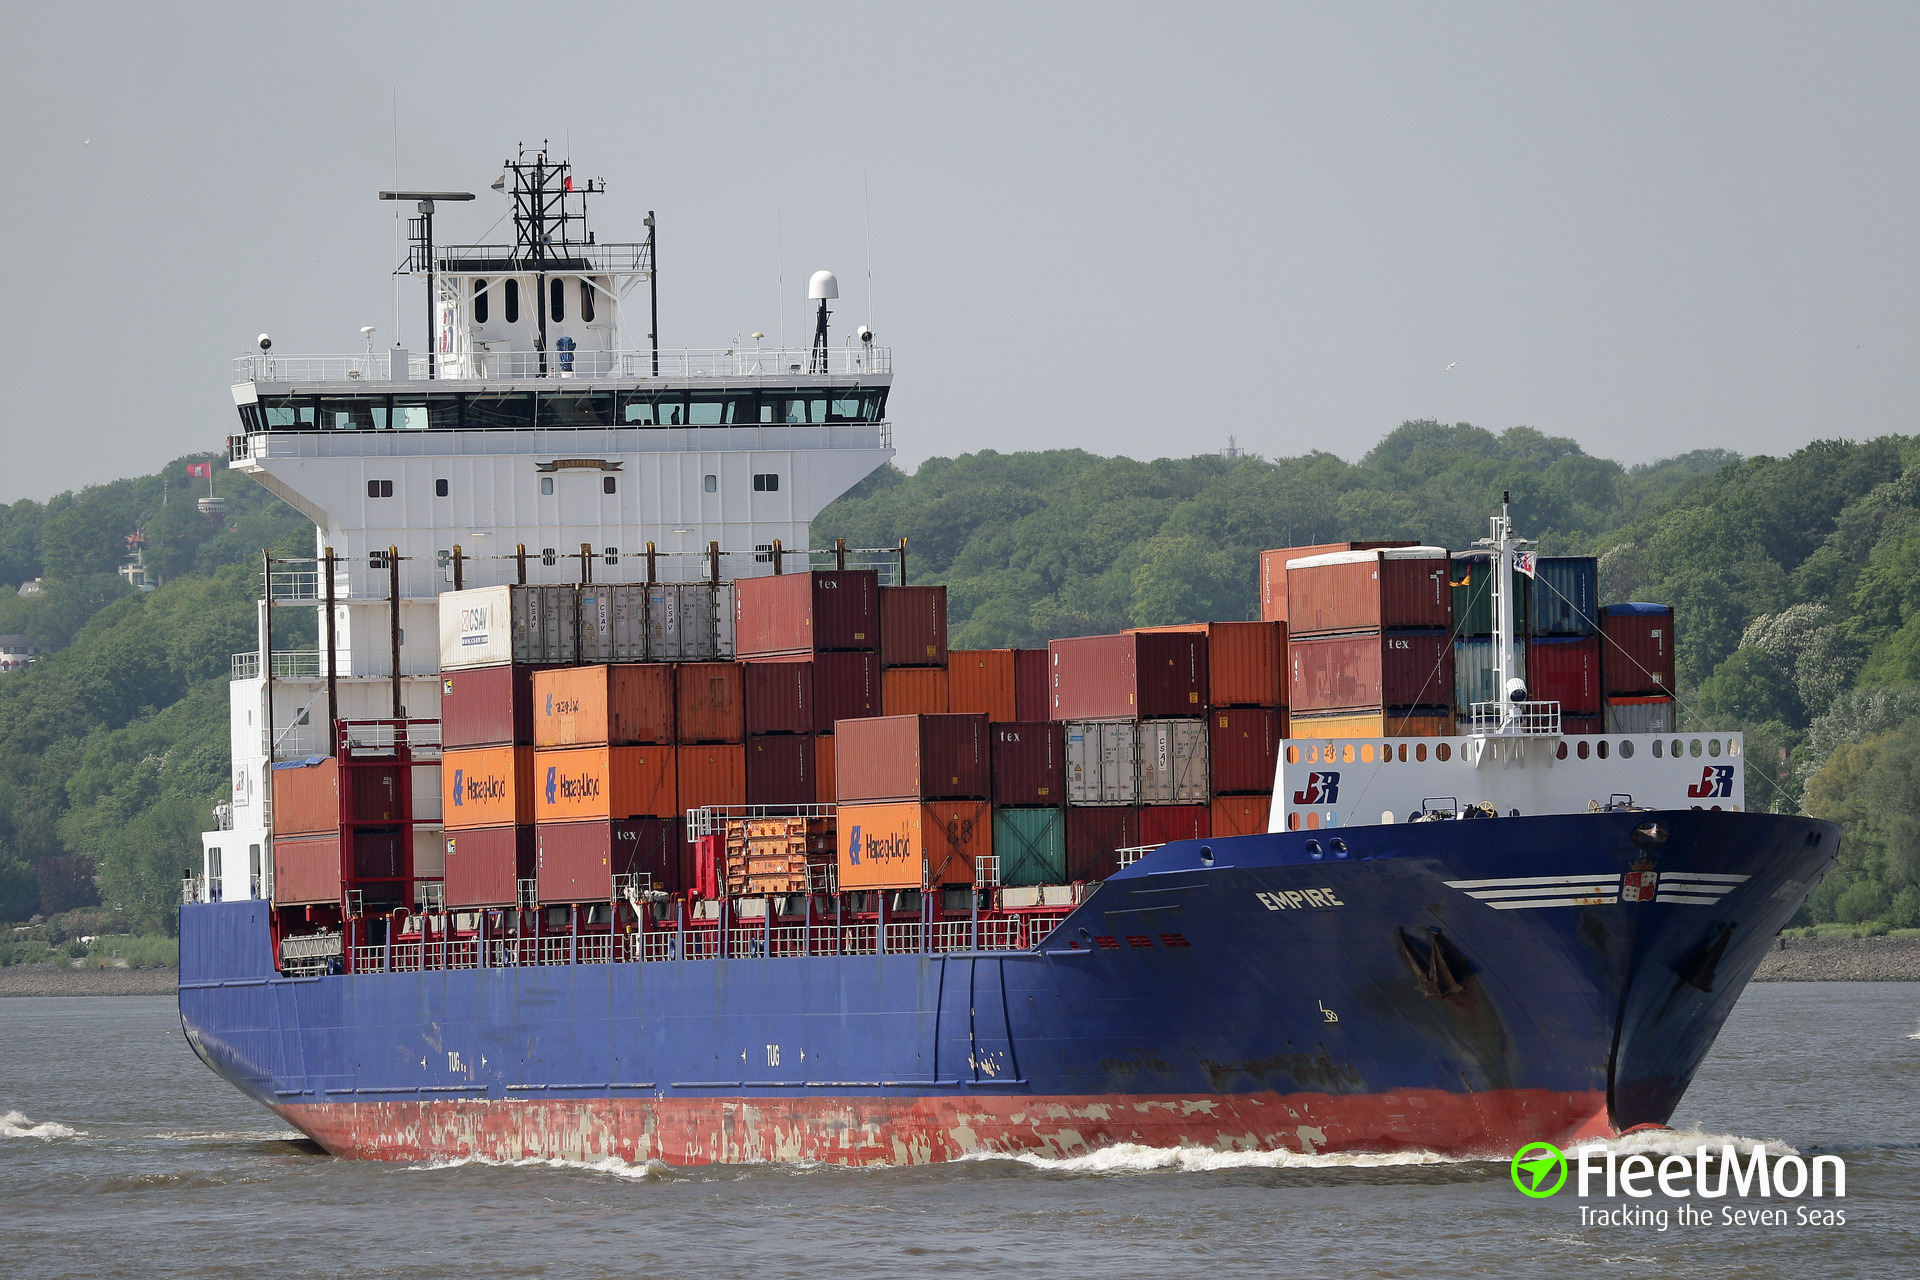 Boxships Empire and Herm Kiepe collided in Kiel canal